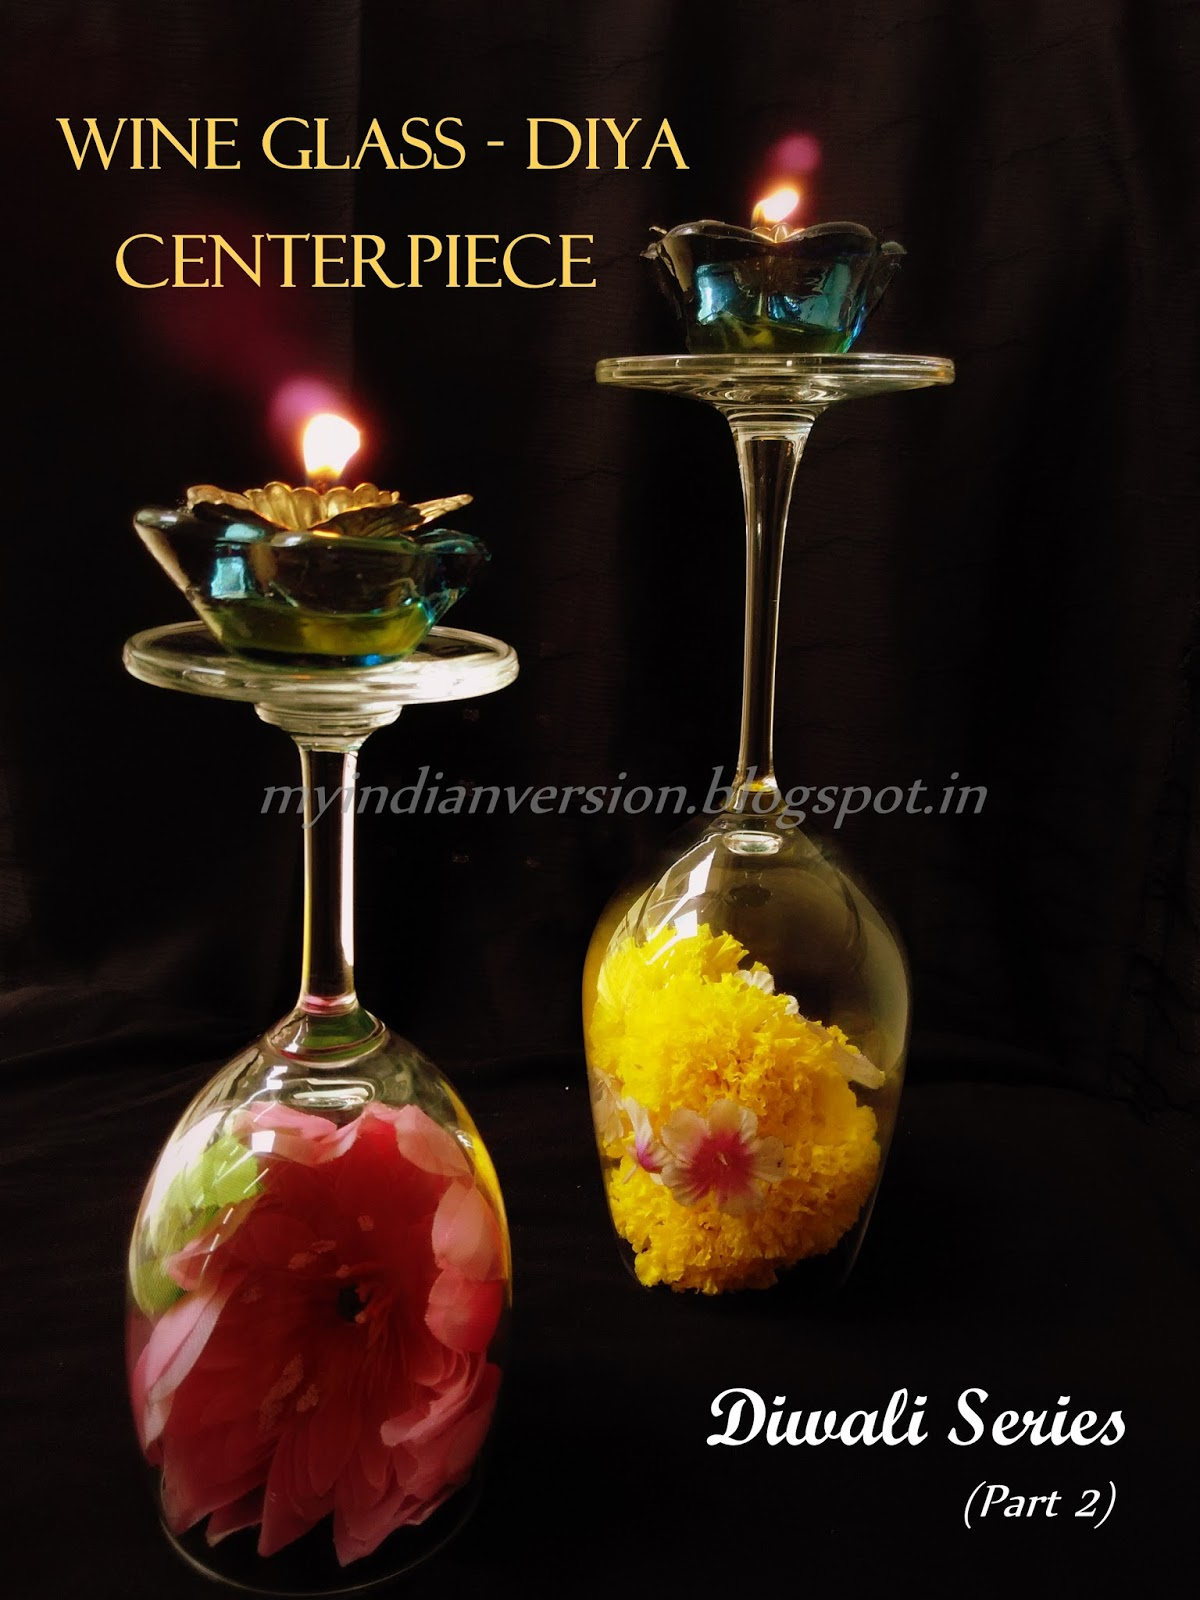 My Indian Version: DIWALI SERIES (Part 2) : Wine Glass ...